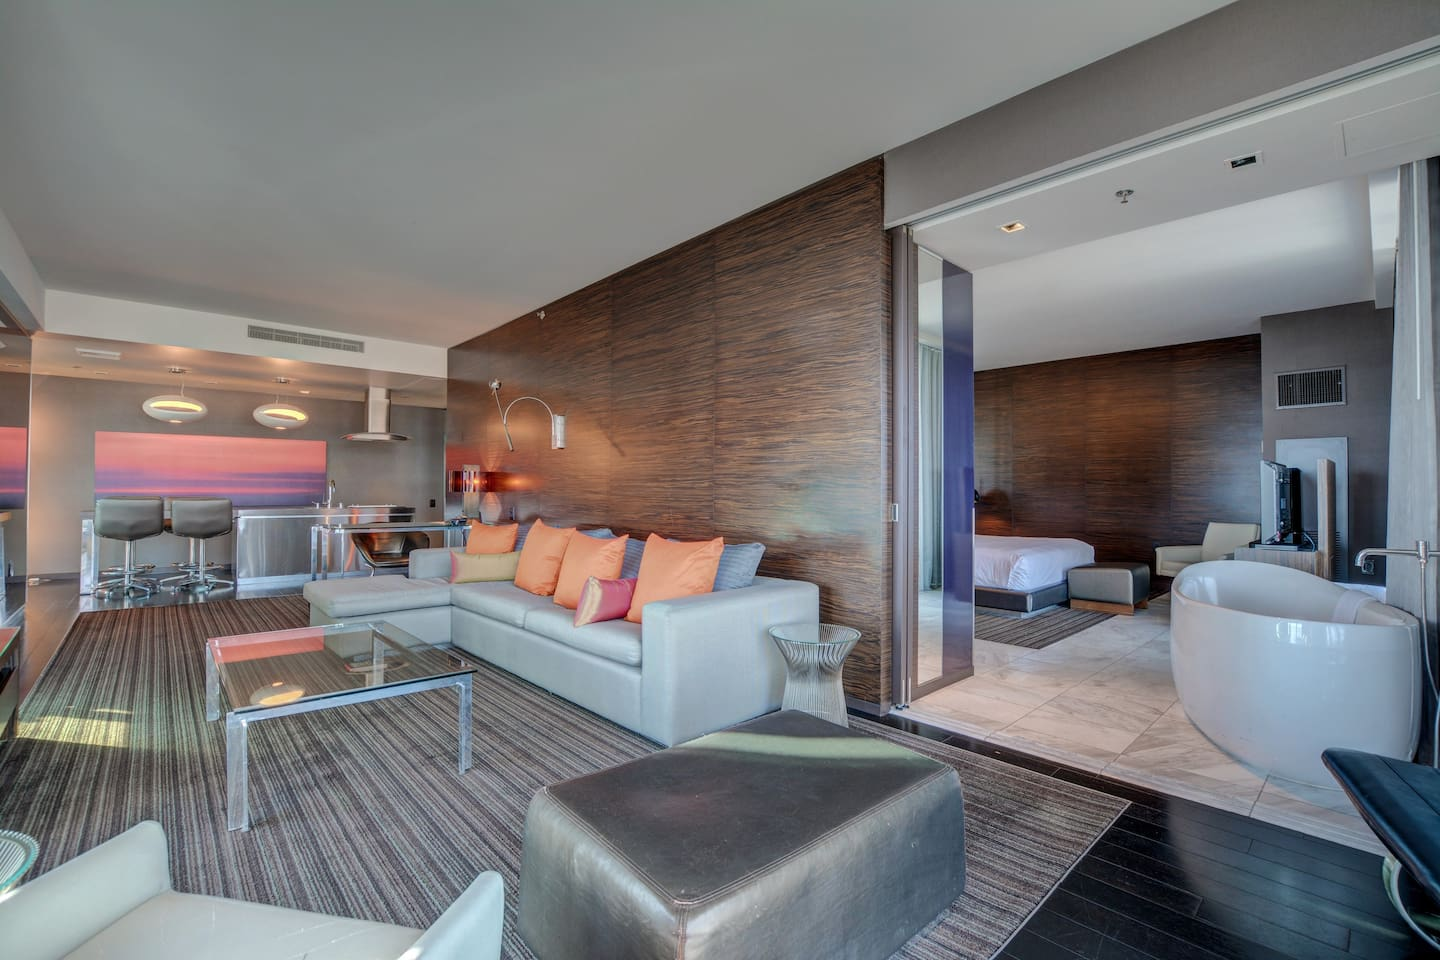 Living room is separated from the 1 bedroom with a sliding door